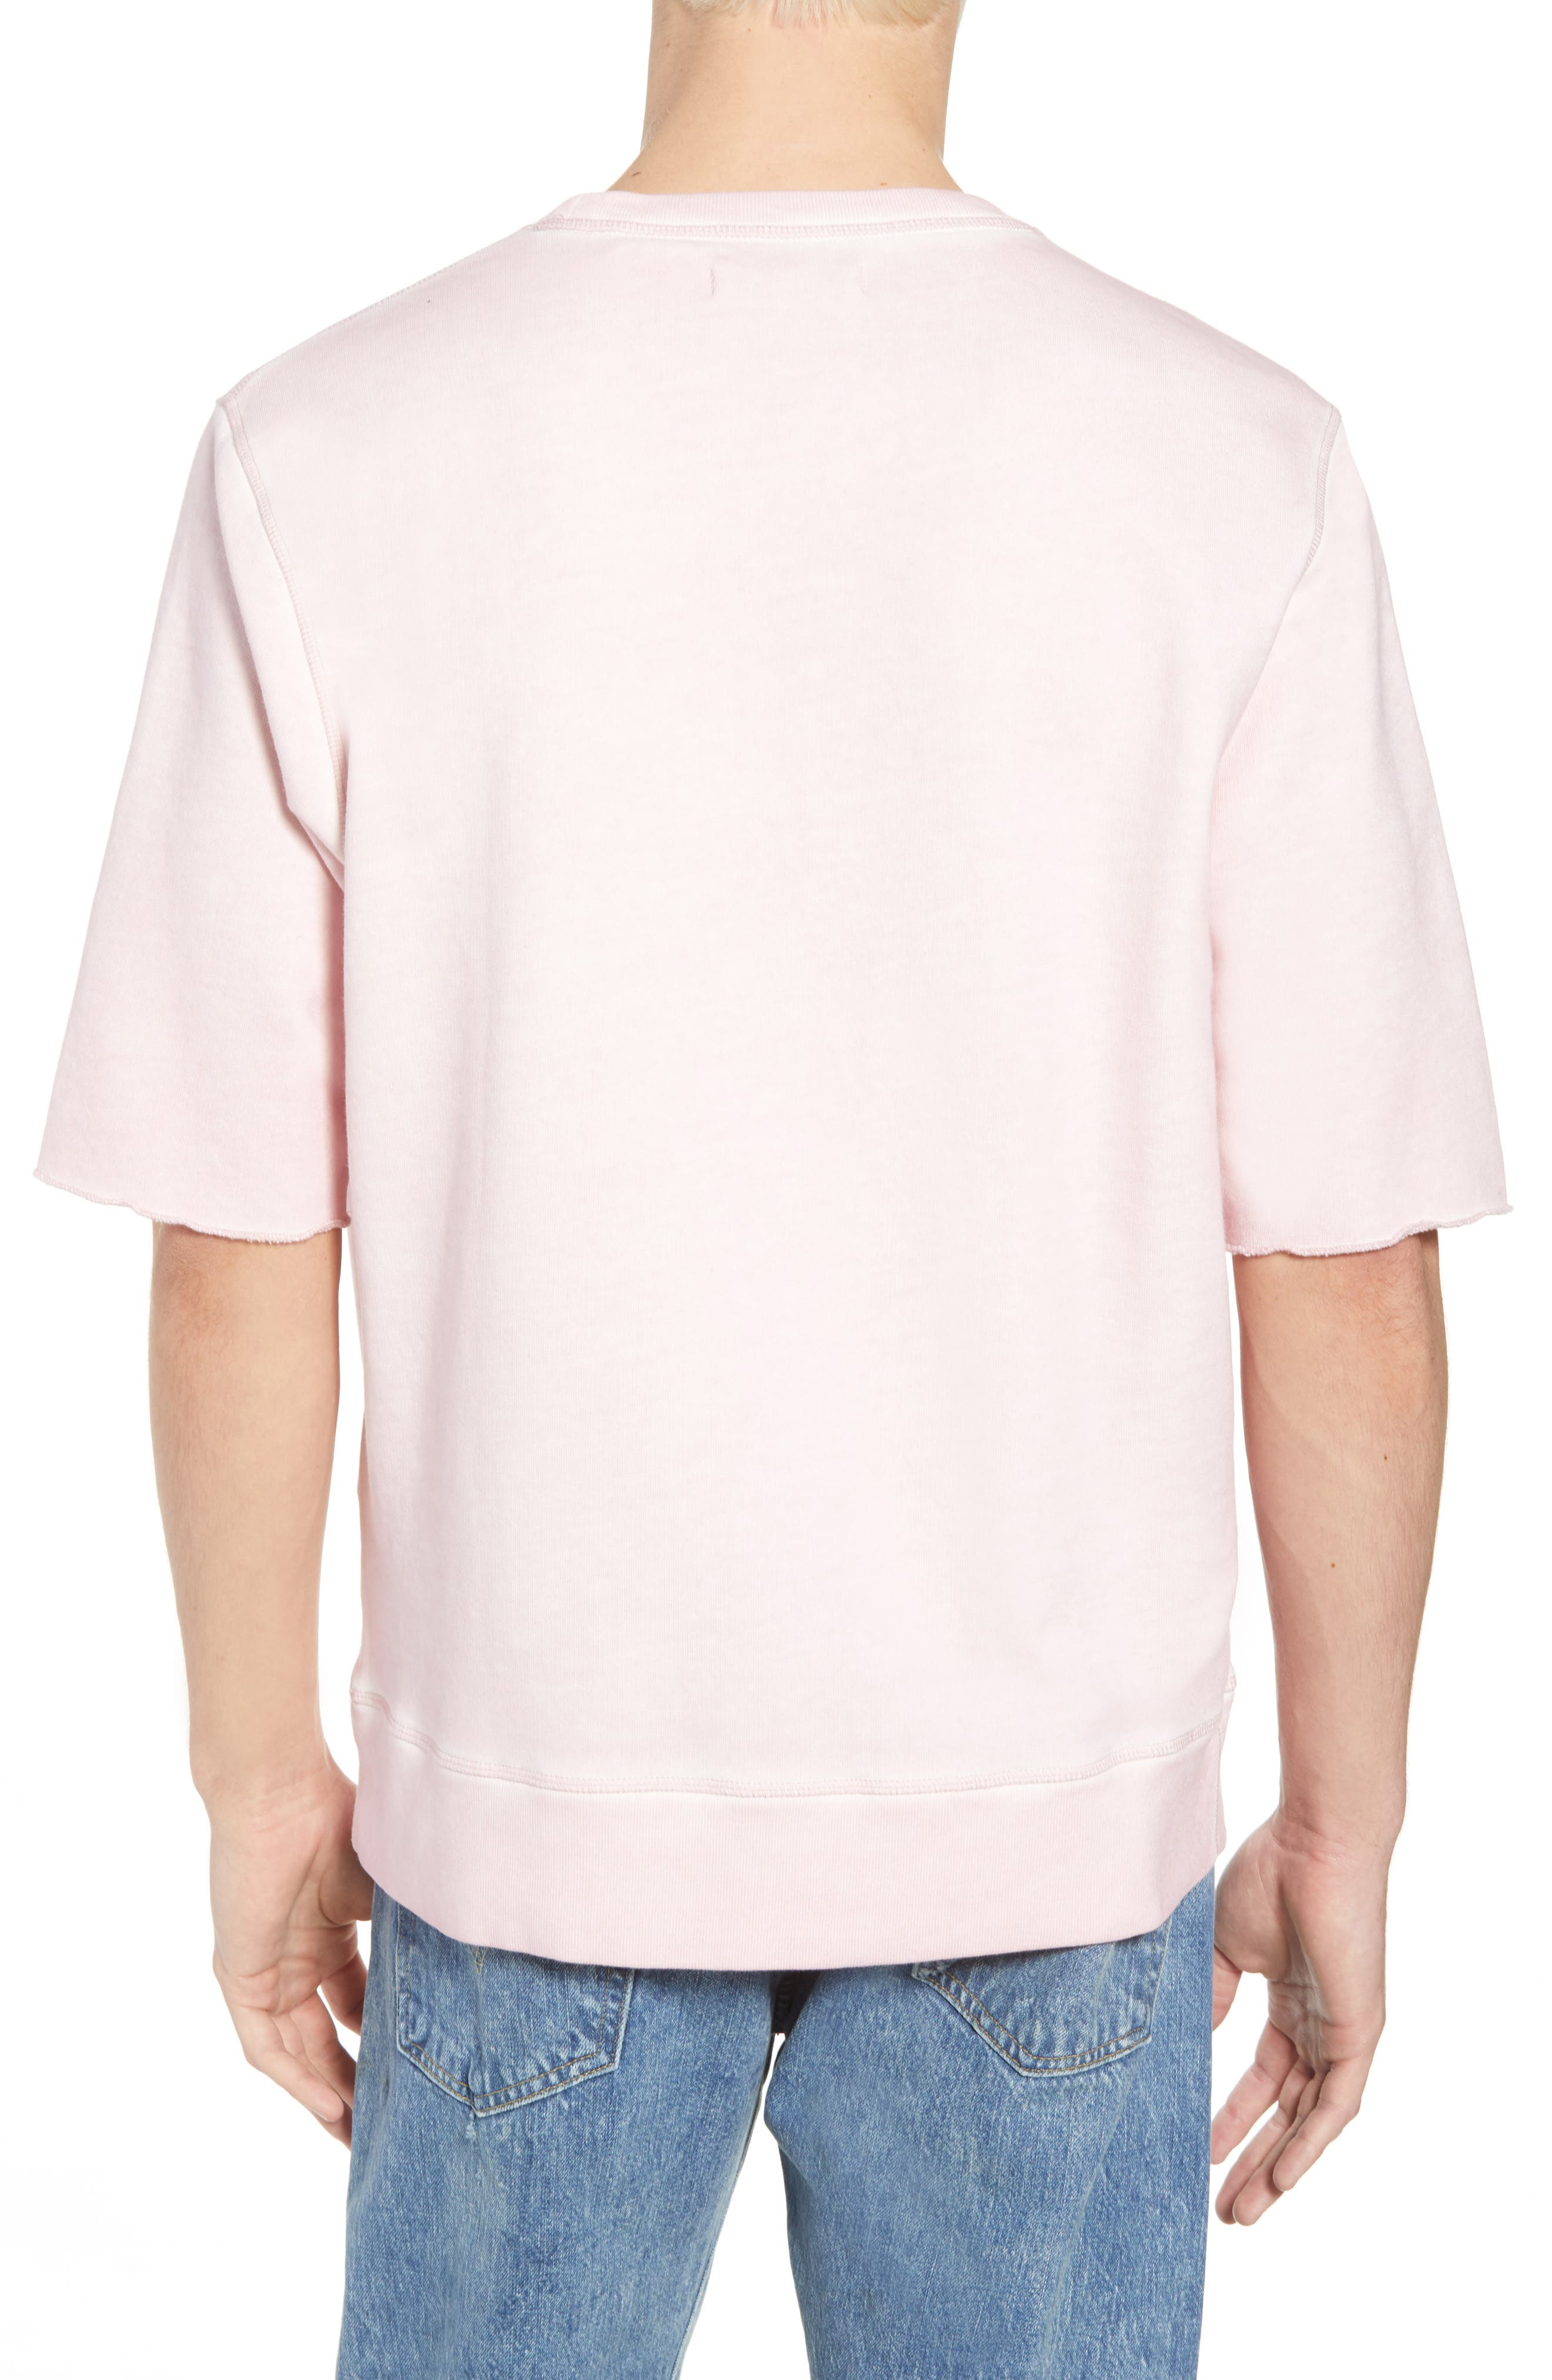 Levis'<sup>®</sup> Made & Crafted<sup>™</sup> Standard Fit T-Shirt,                             Alternate thumbnail 2, color,                             Keepsake Lilac